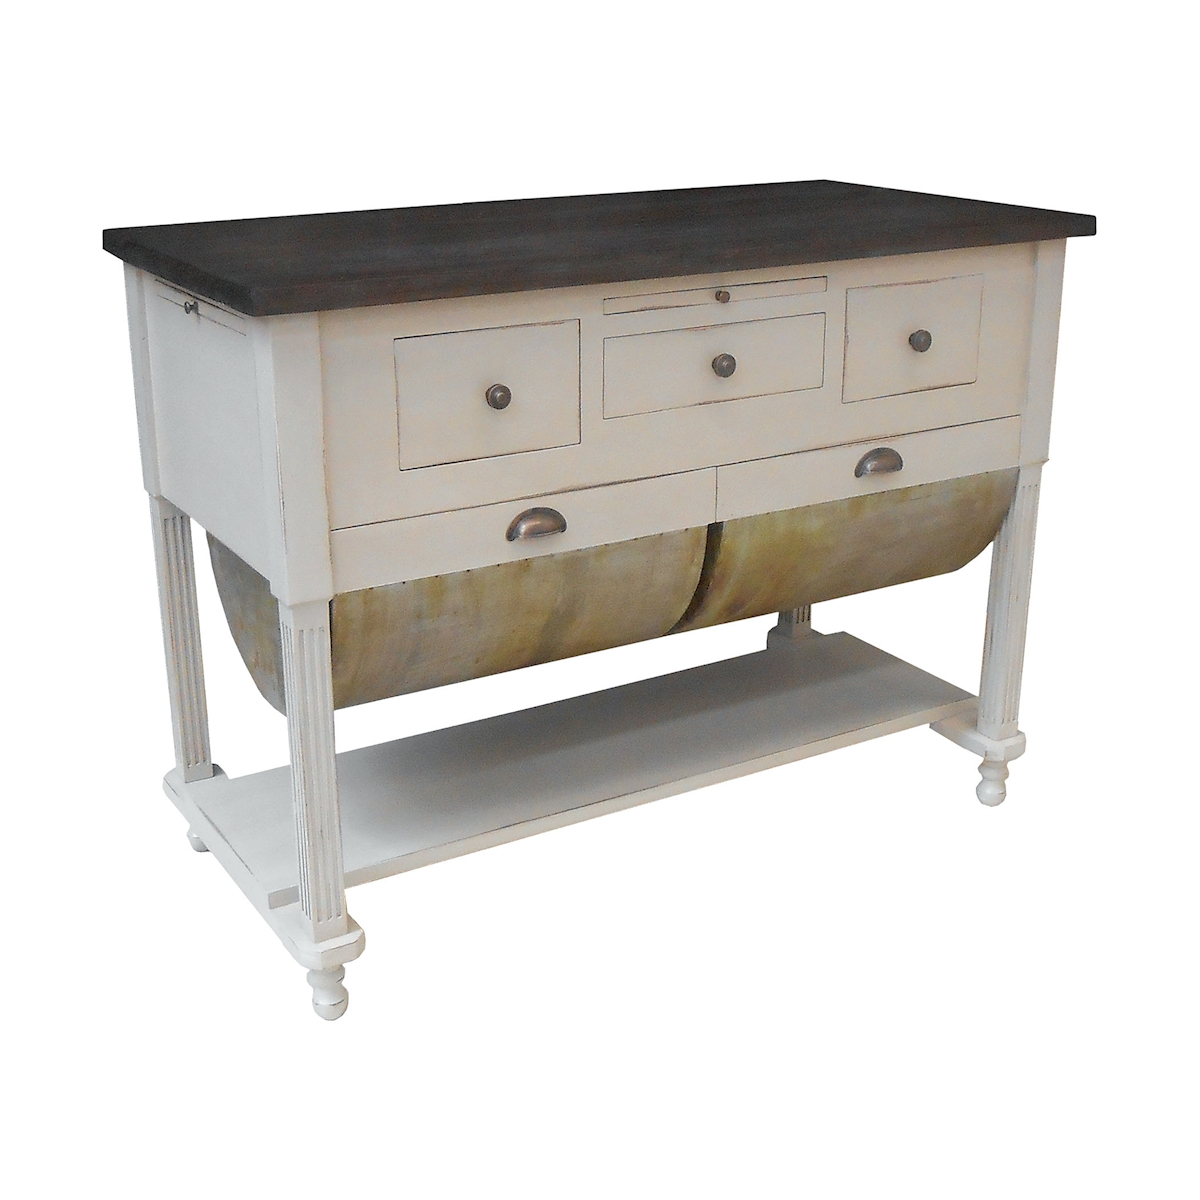 Possum Belly Kitchen Island in Crossroads European White | Elk Home